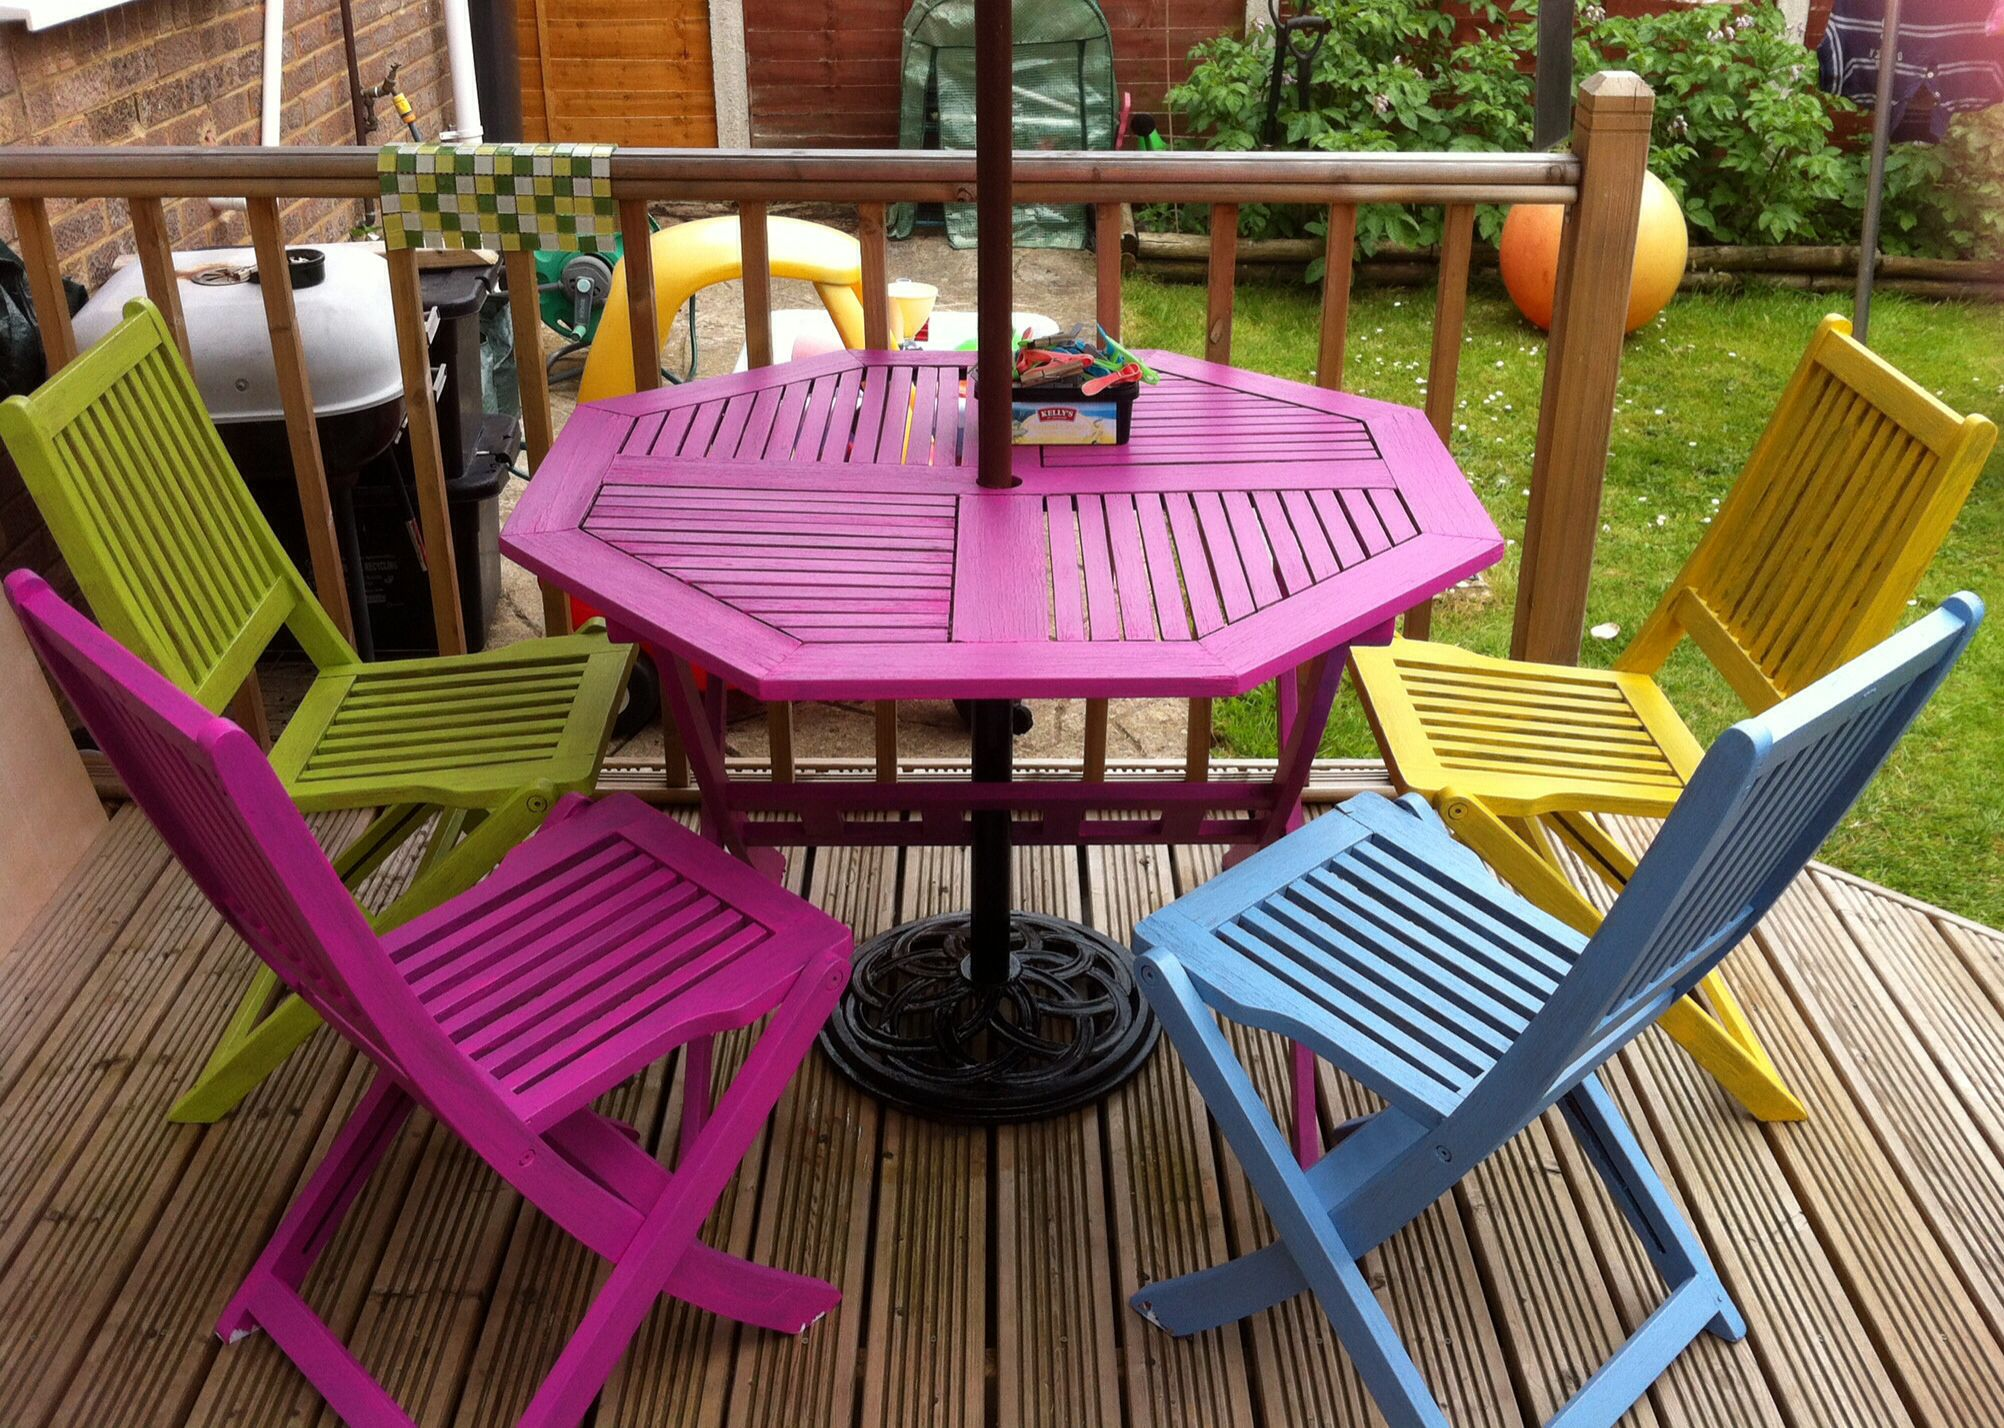 Bright painted garden furniture adds a bit of colour to the